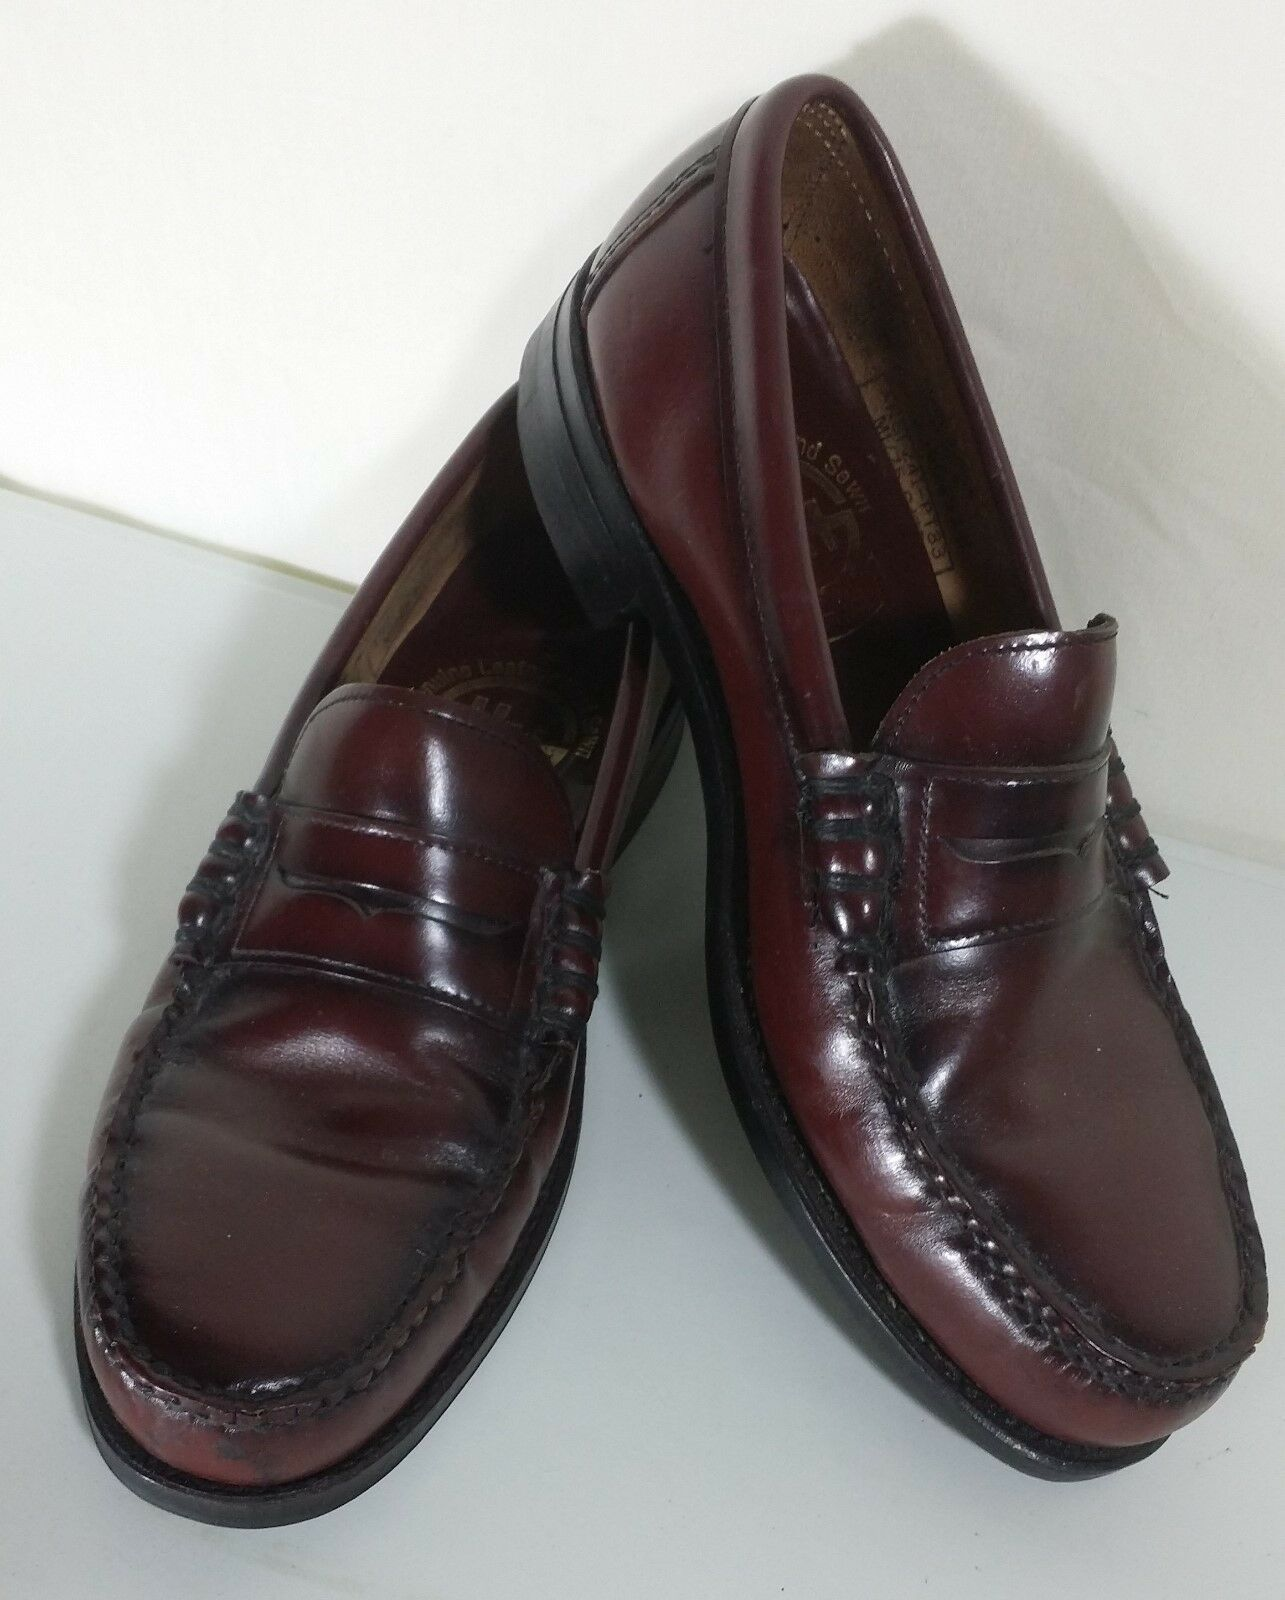 H.H. Cordovan Burgundy Penny Loafers Men's 9M Leather Slip On Dress shoes